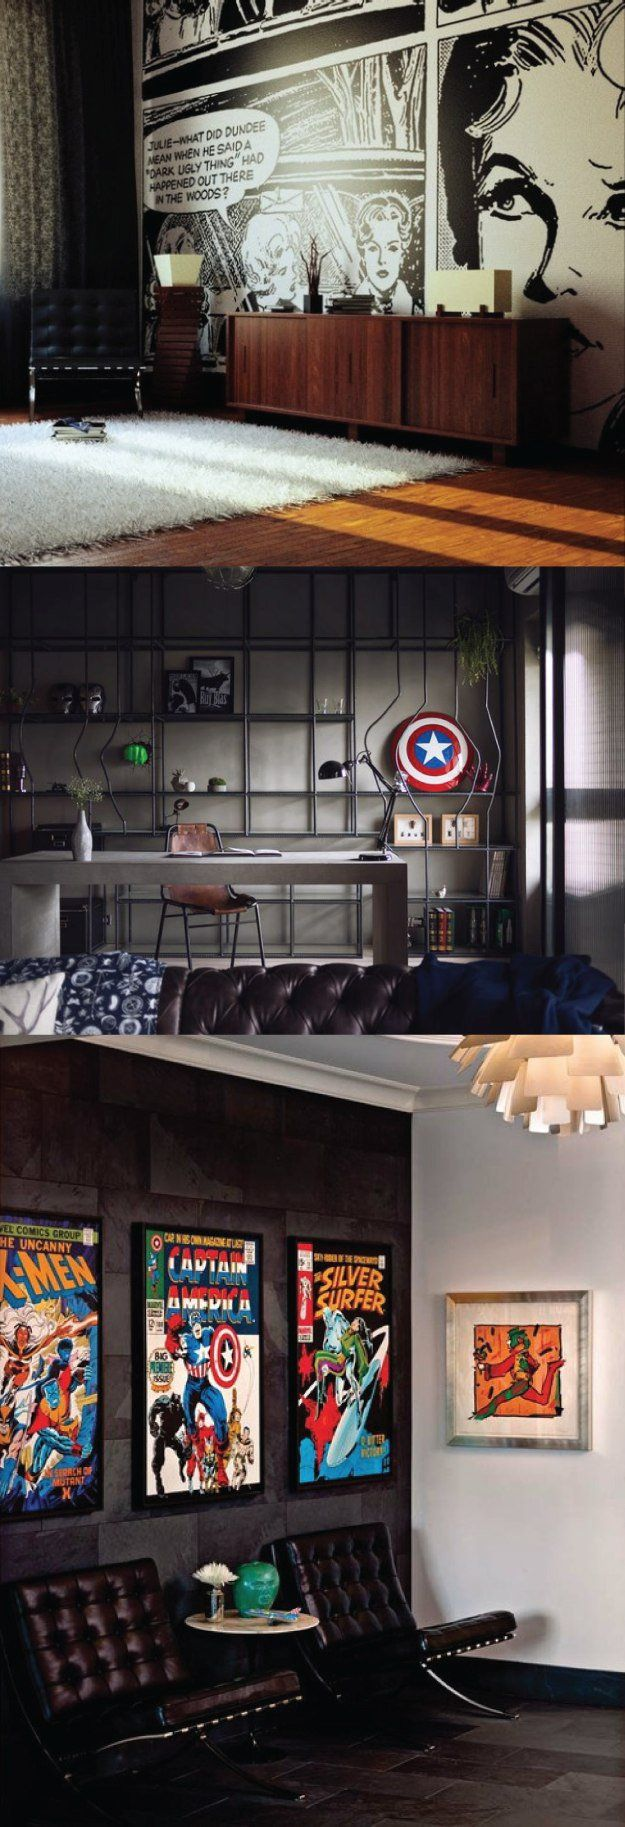 Masculine Interior Design Inspired by Comic Books - Cool Man Cave Ideas